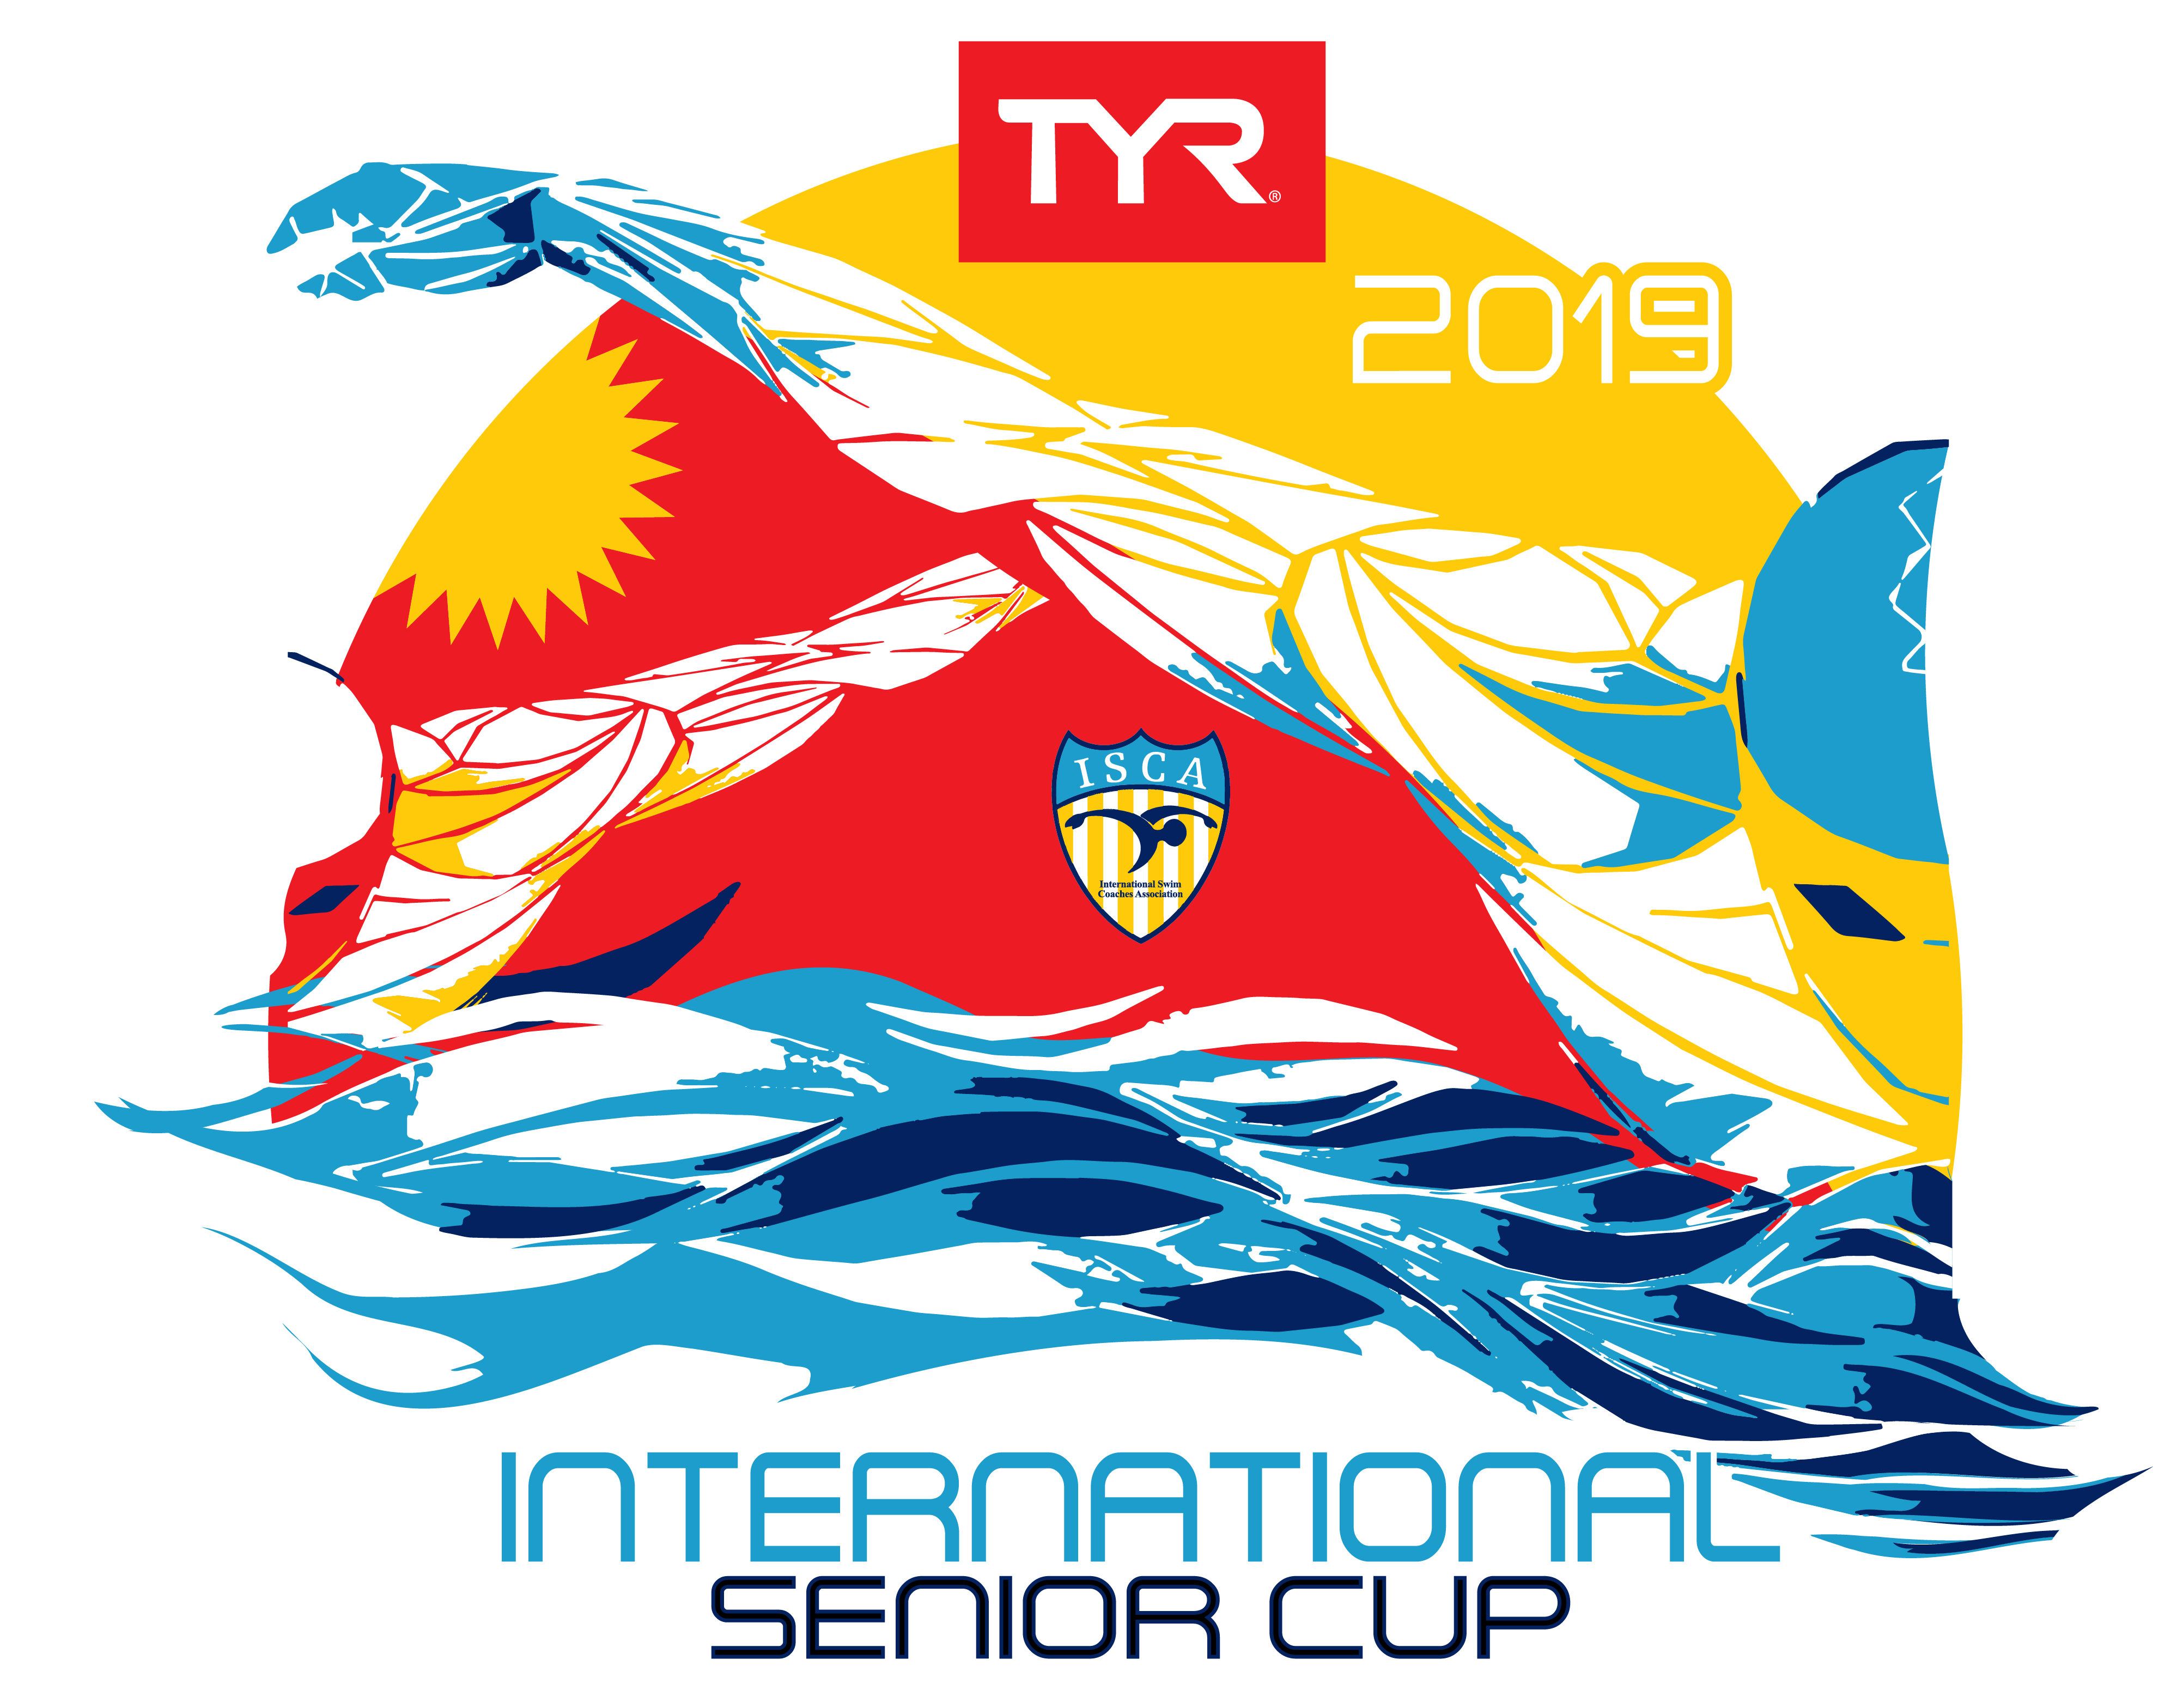 International senior cup